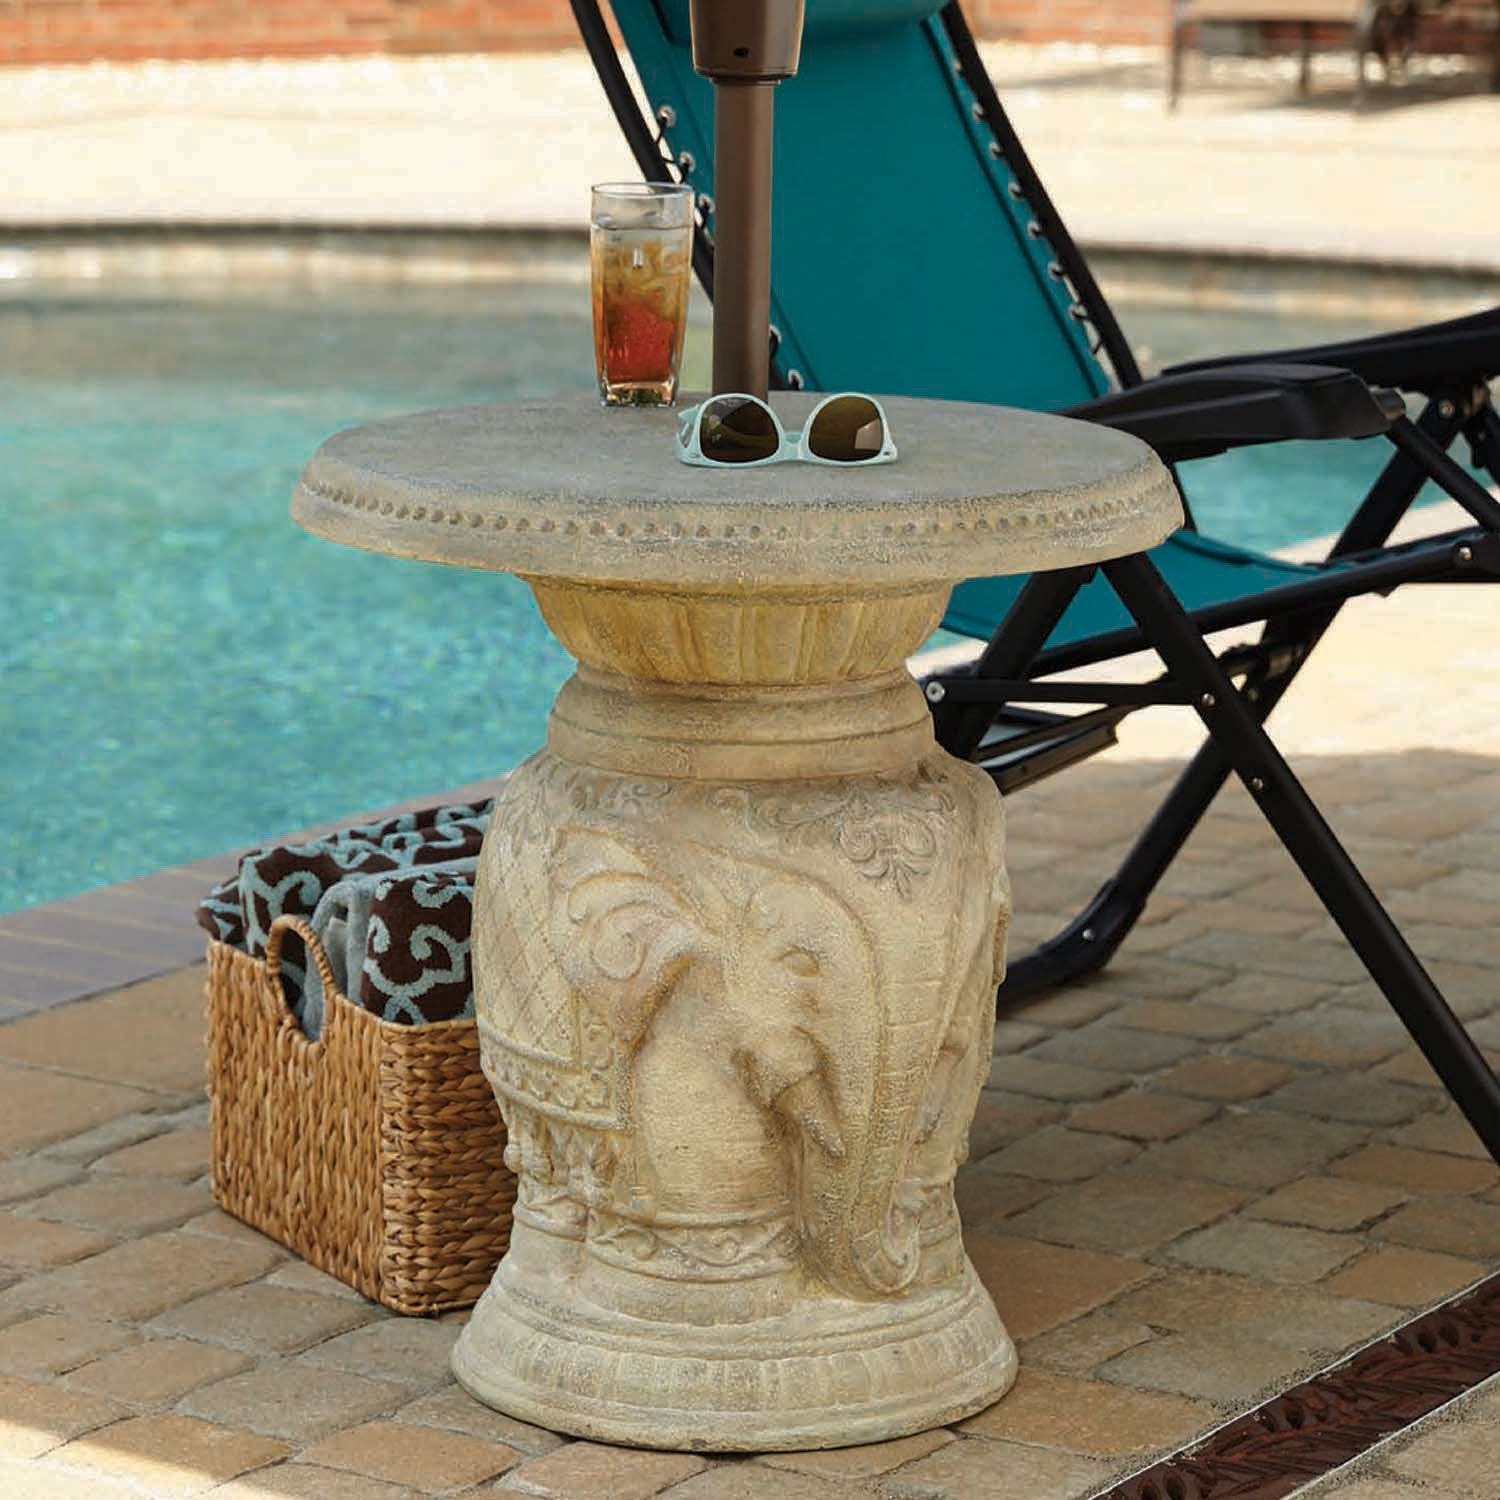 garden enchanting outdoor patio decor ideas with umbrellas target umbrella for nic table and stand stands tilt furniture accent lamps mango wood dining antique living room tables